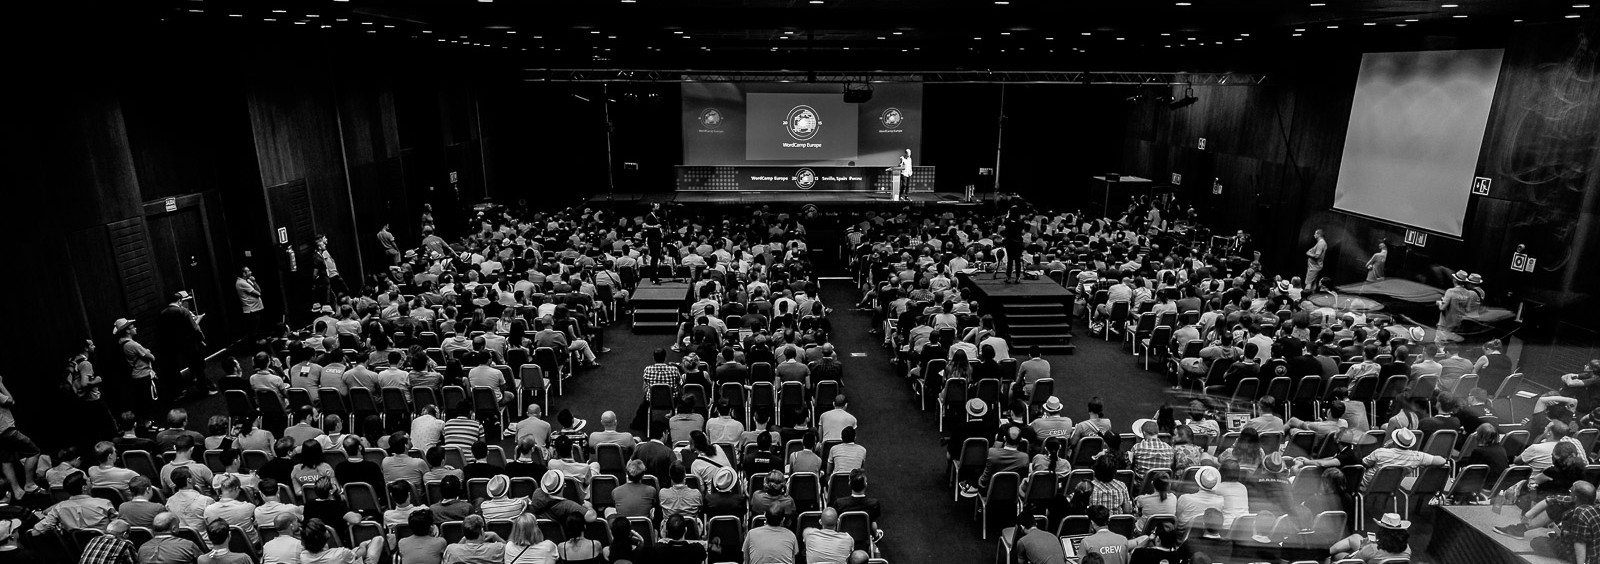 WordCamp Europe, the most important WordPress event on this continent.